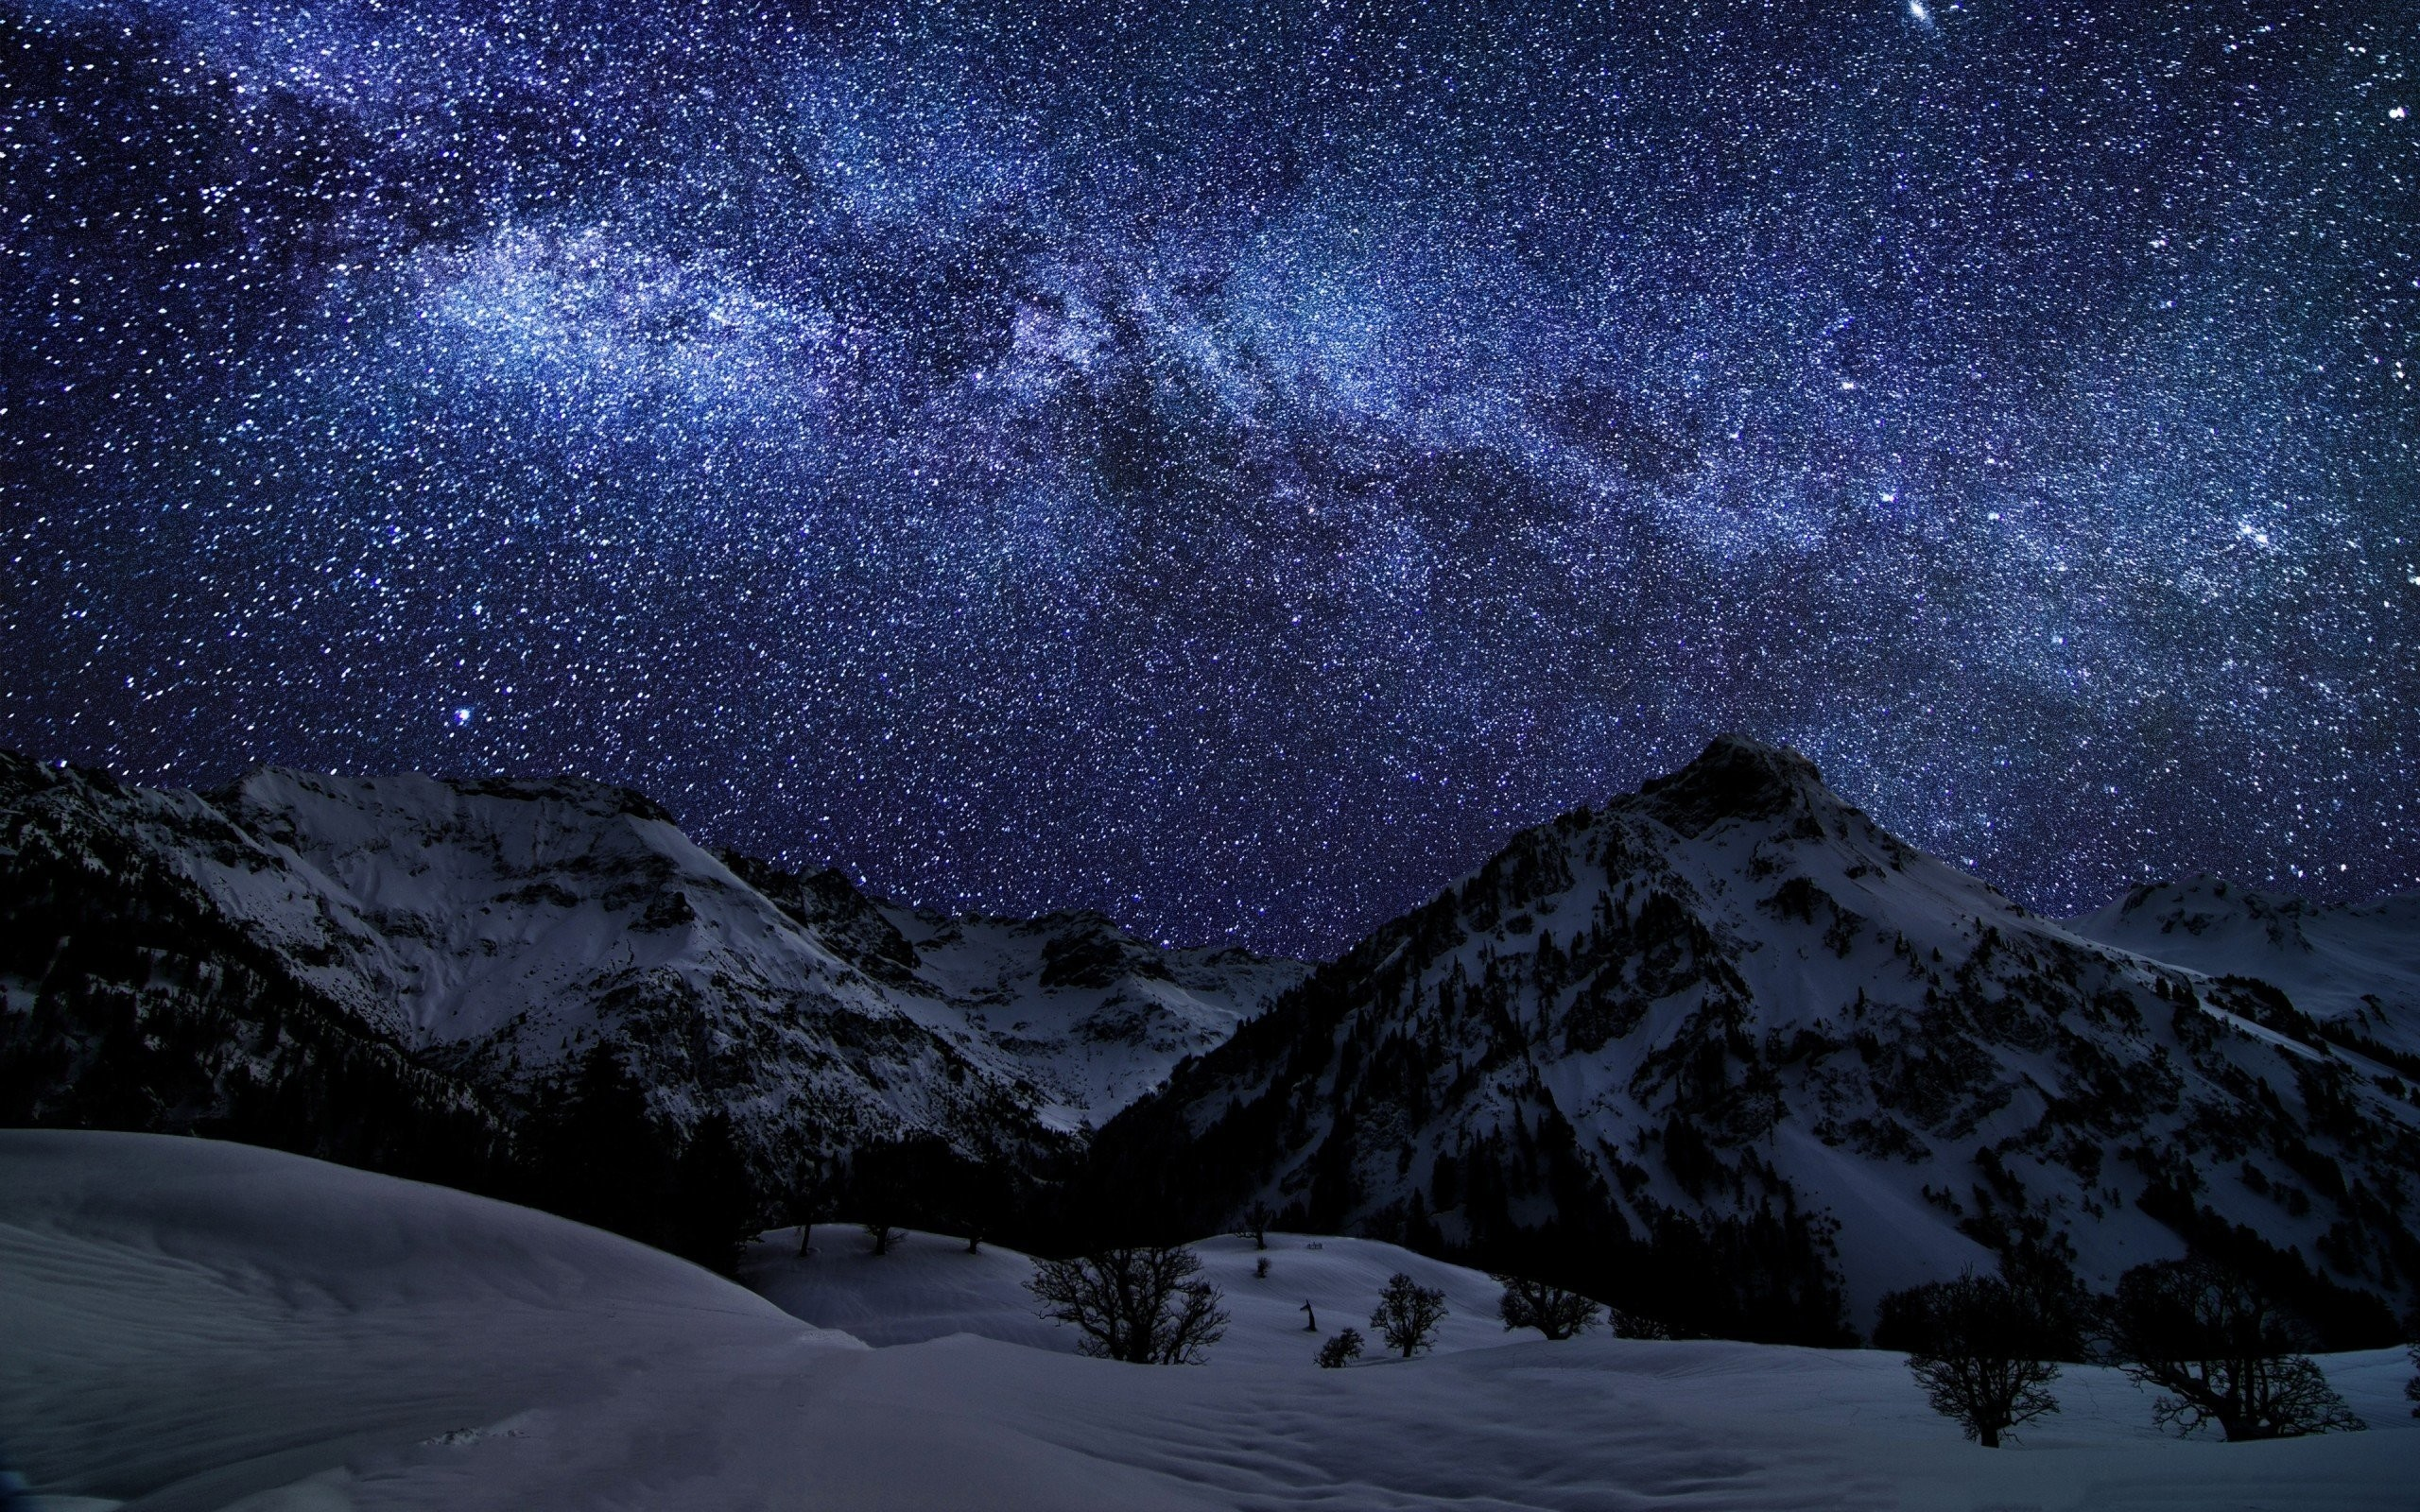 2560x1600 Landscapes-mountains-snow-skies-stars-starry-night-nature